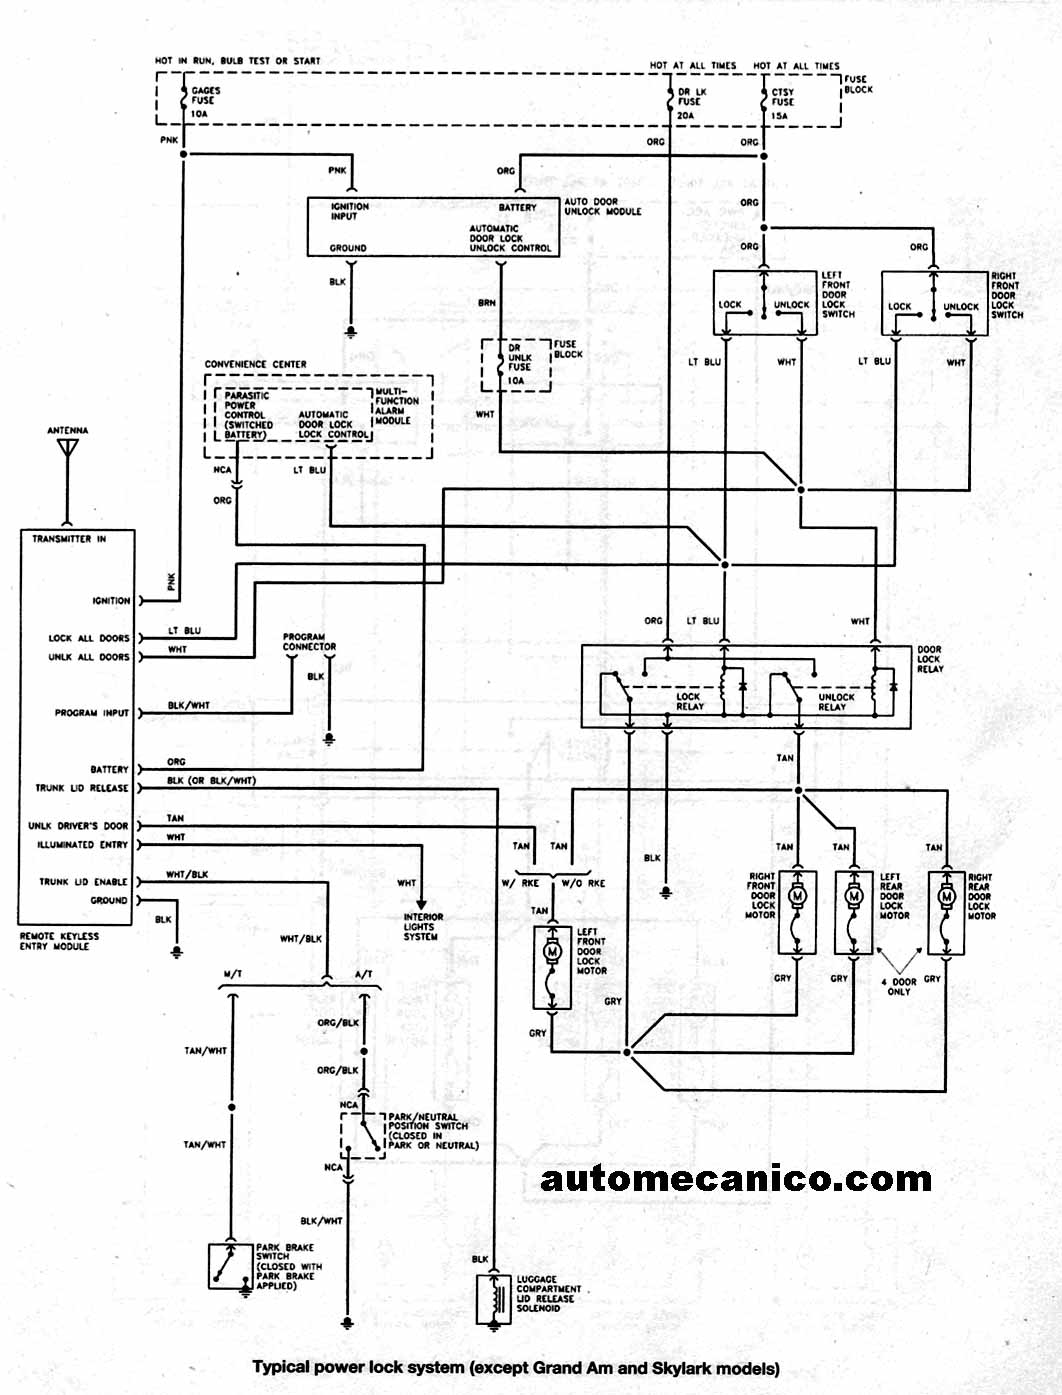 switch diagrama de cableado of motor control